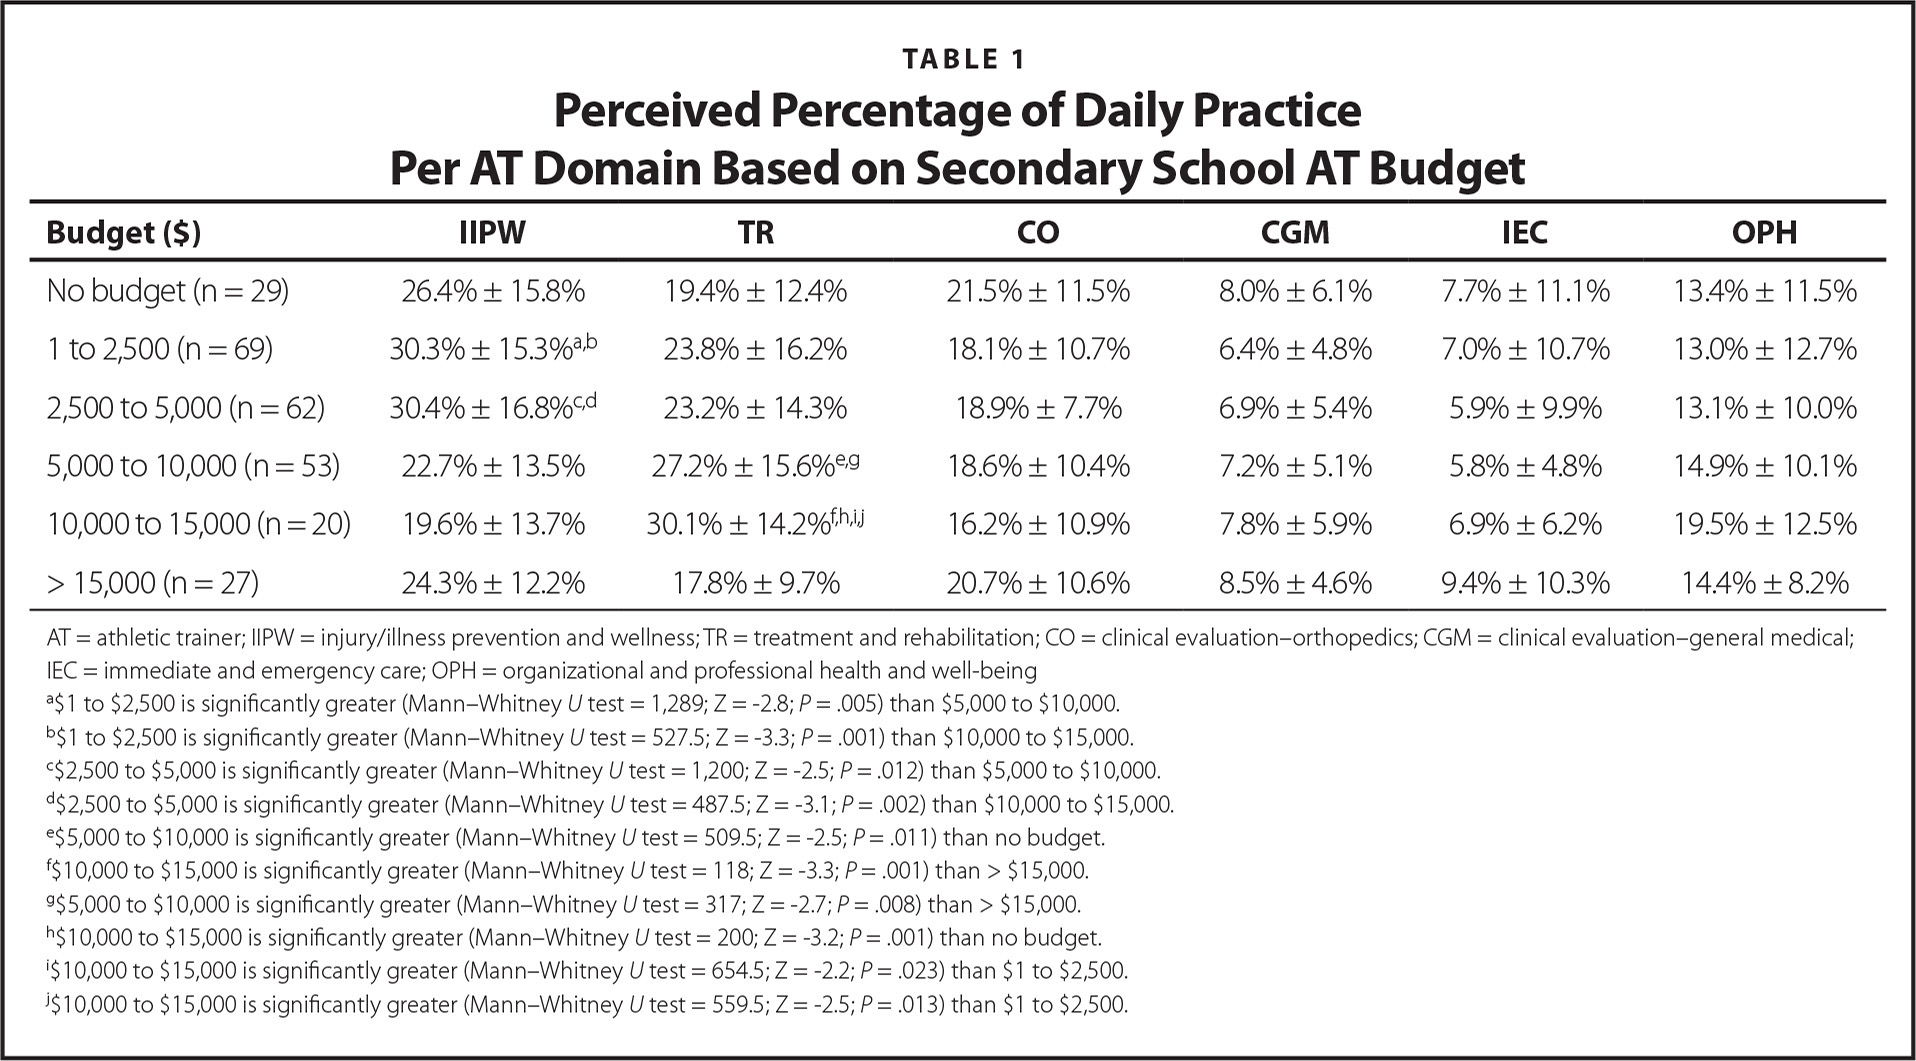 Perceived Percentage of Daily Practice Per AT Domain Based on Secondary School AT Budget